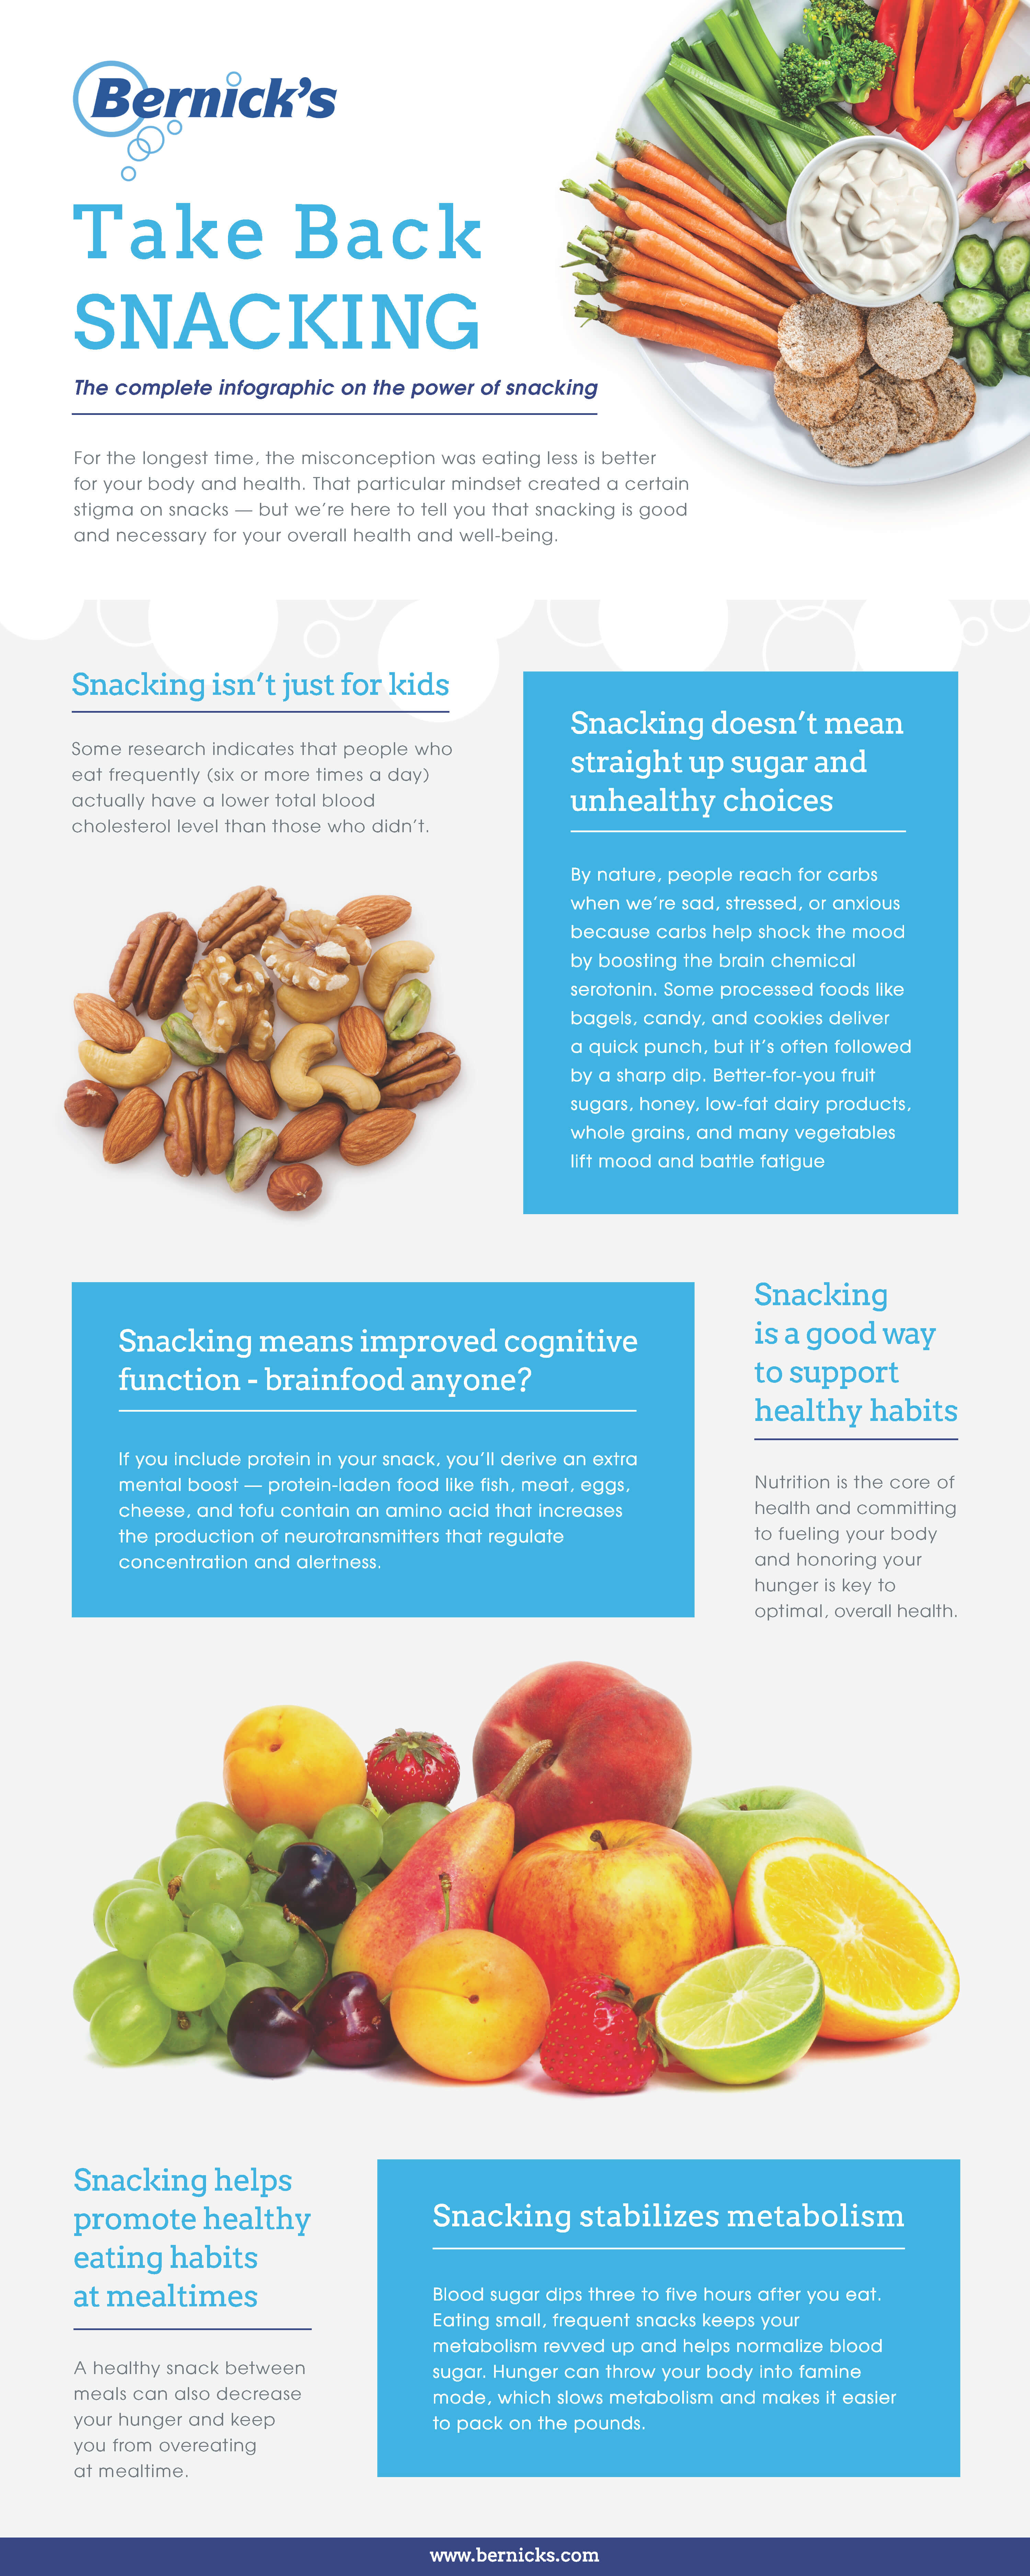 Take back snacking infographic